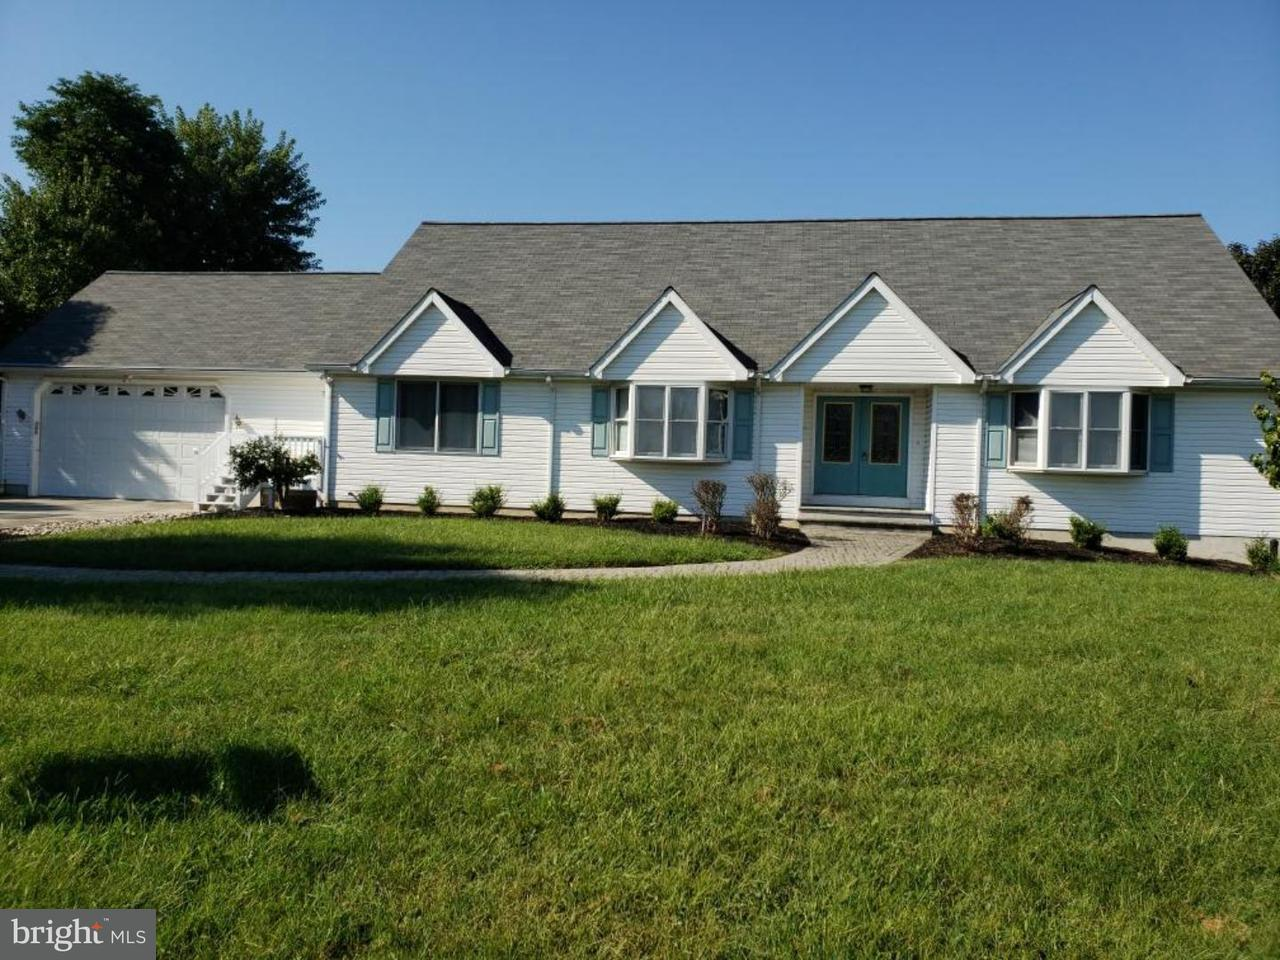 Single Family Home for Sale at 21 SOMERS Avenue Clarksboro, New Jersey 08020 United States